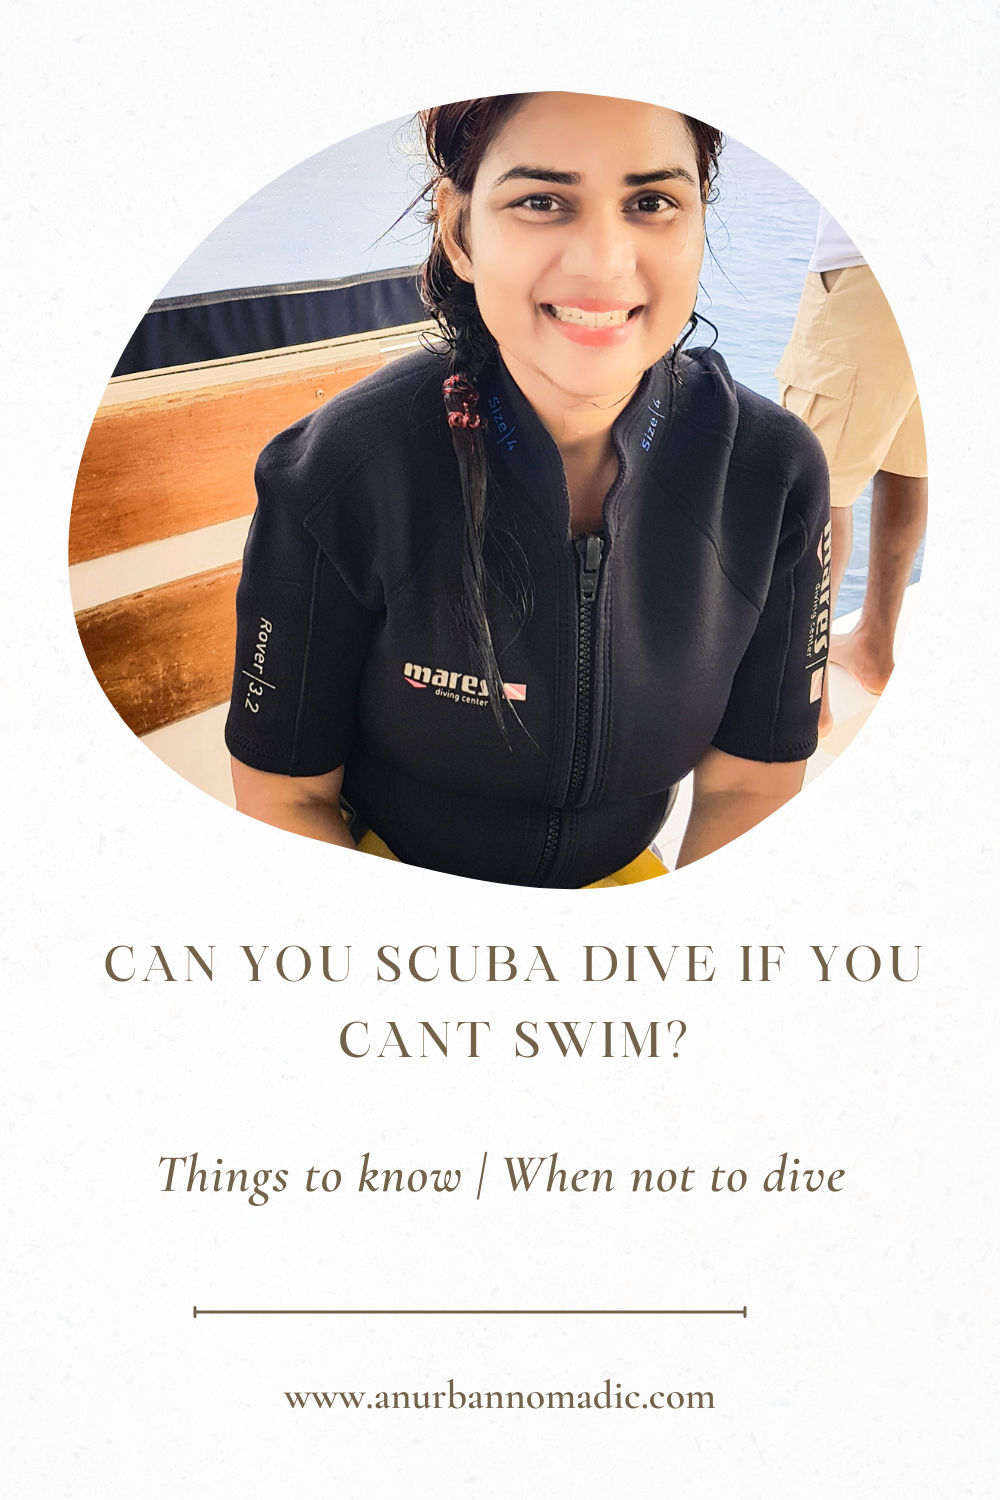 Can I learn to scuba dive if I can't swim?